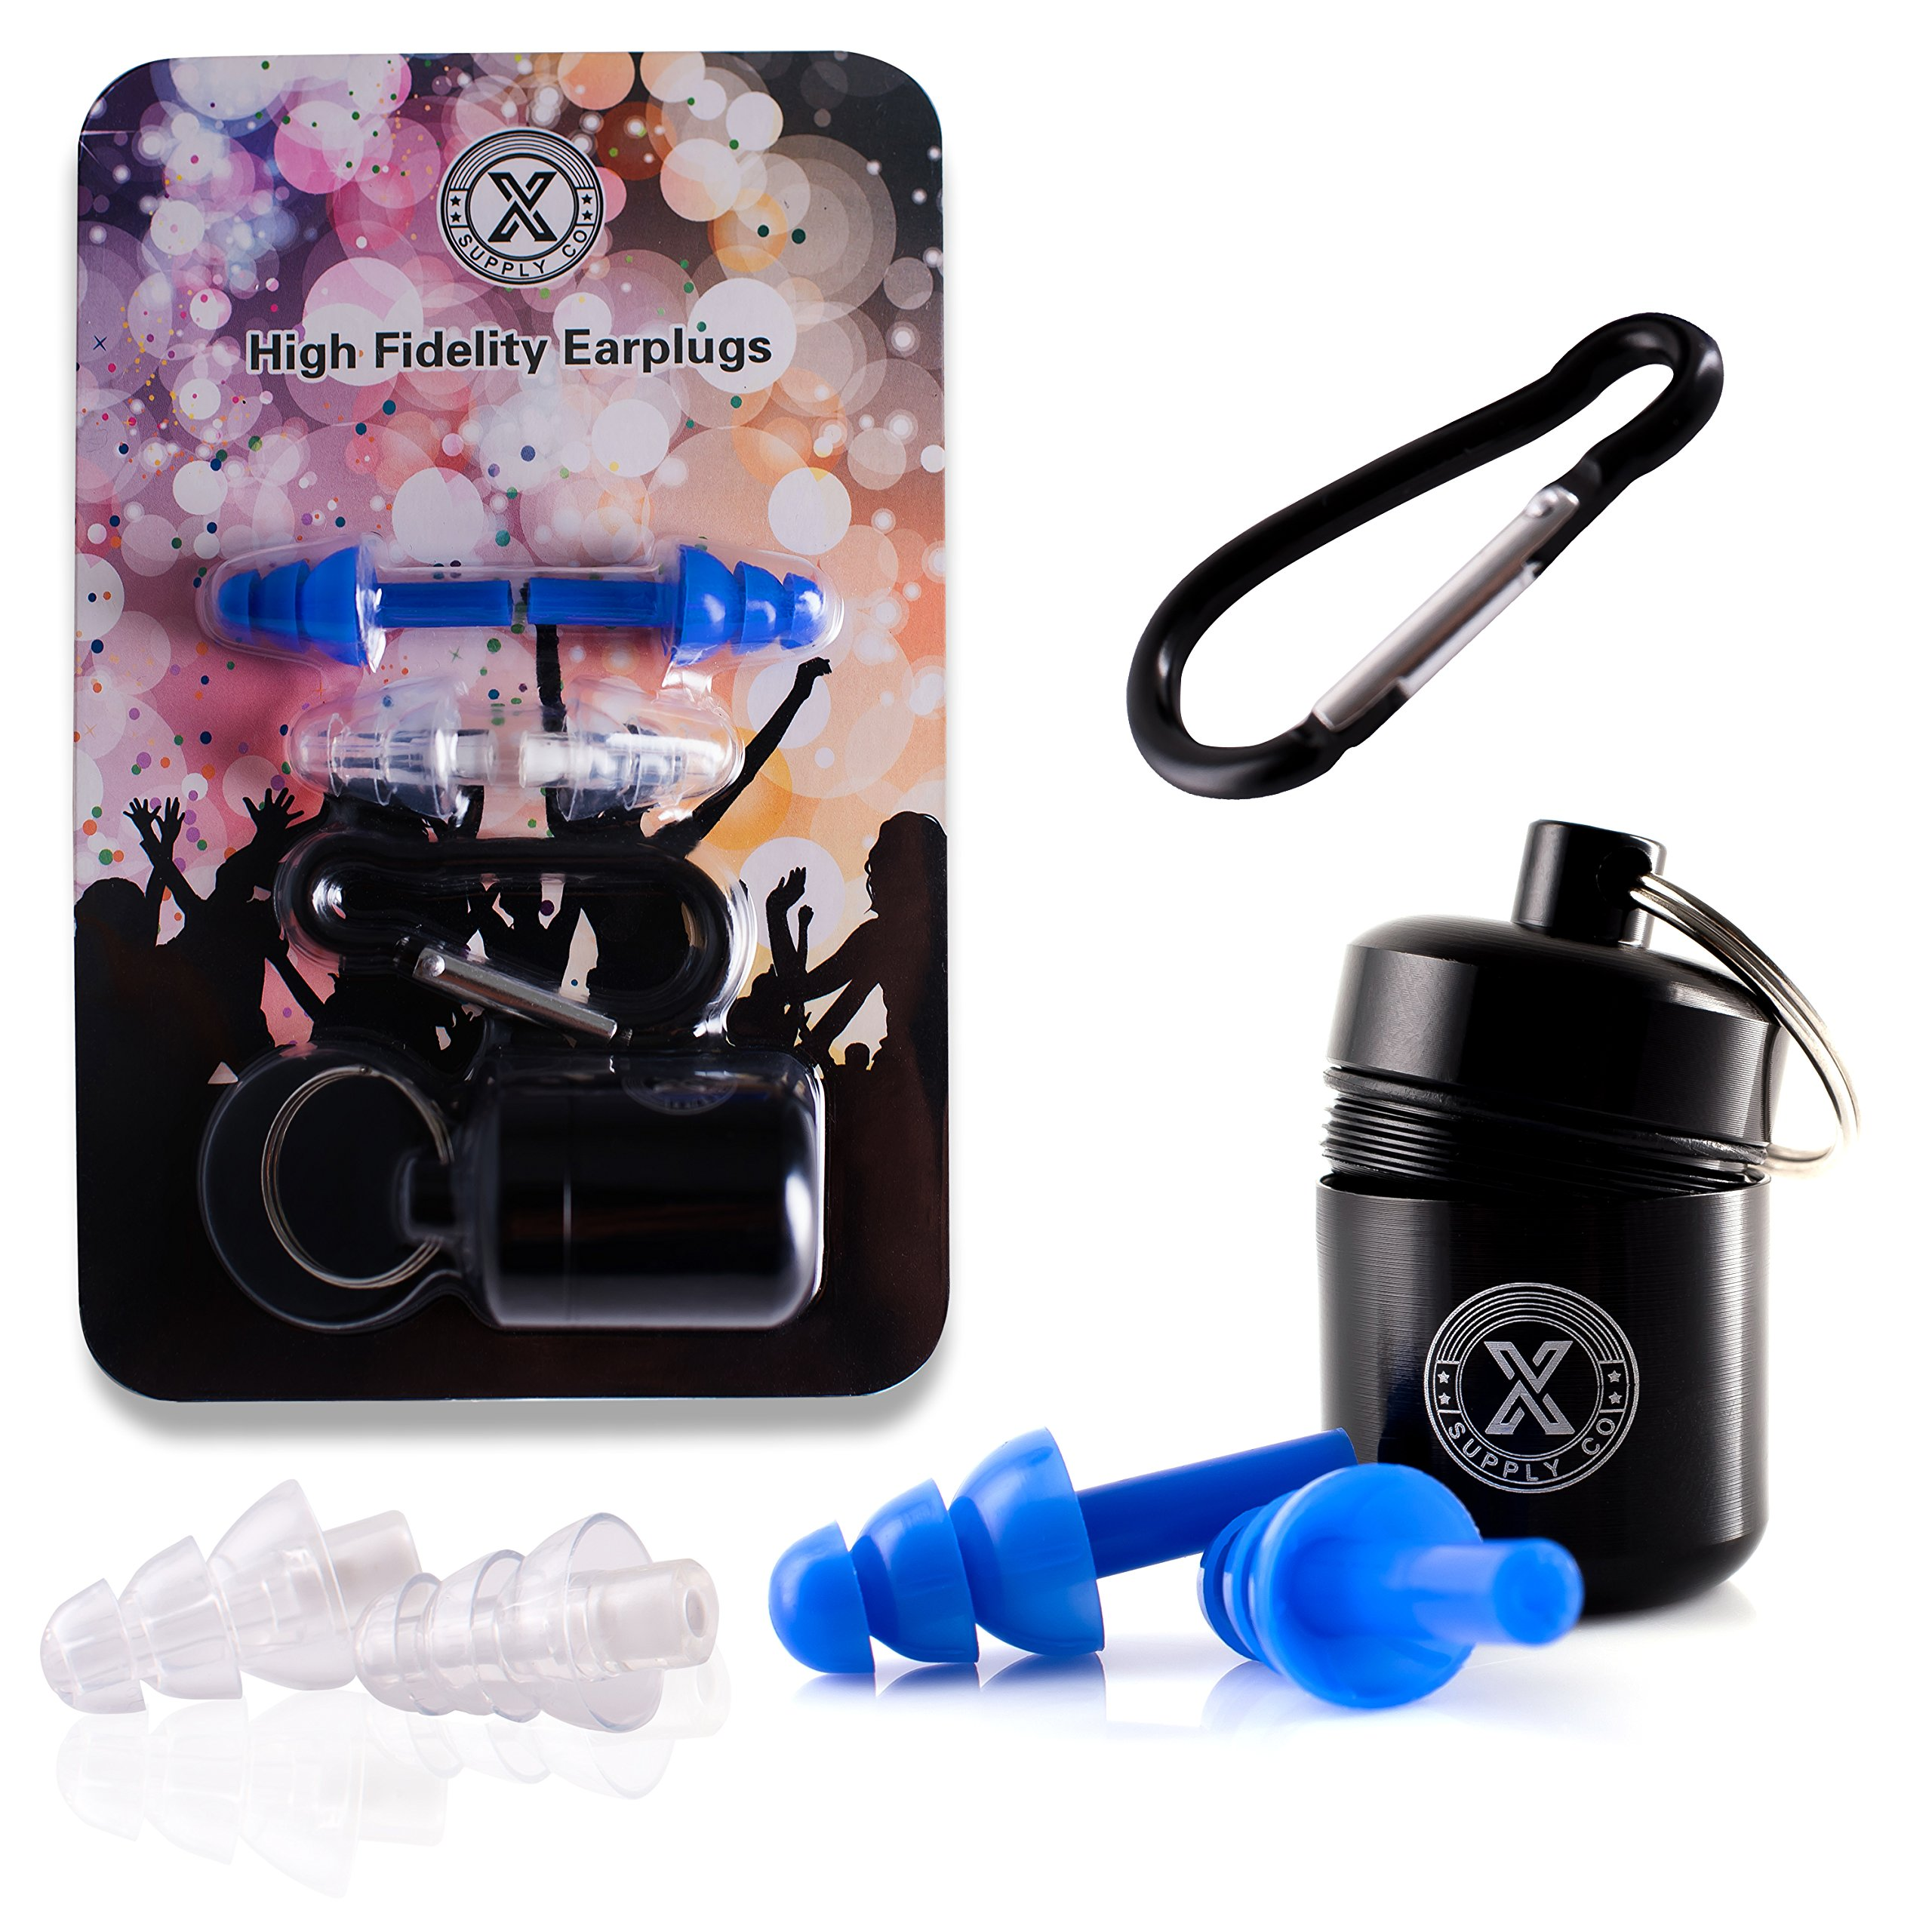 X Supply Co High Fidelity 2 Earplugs Set With Cord, Storage Case & Keychain | Ergonomic & Hypoallergenic Silicone Noise Cancelling Ear Protectors For Musicians, Festivals, Travel, Motorcycles & More